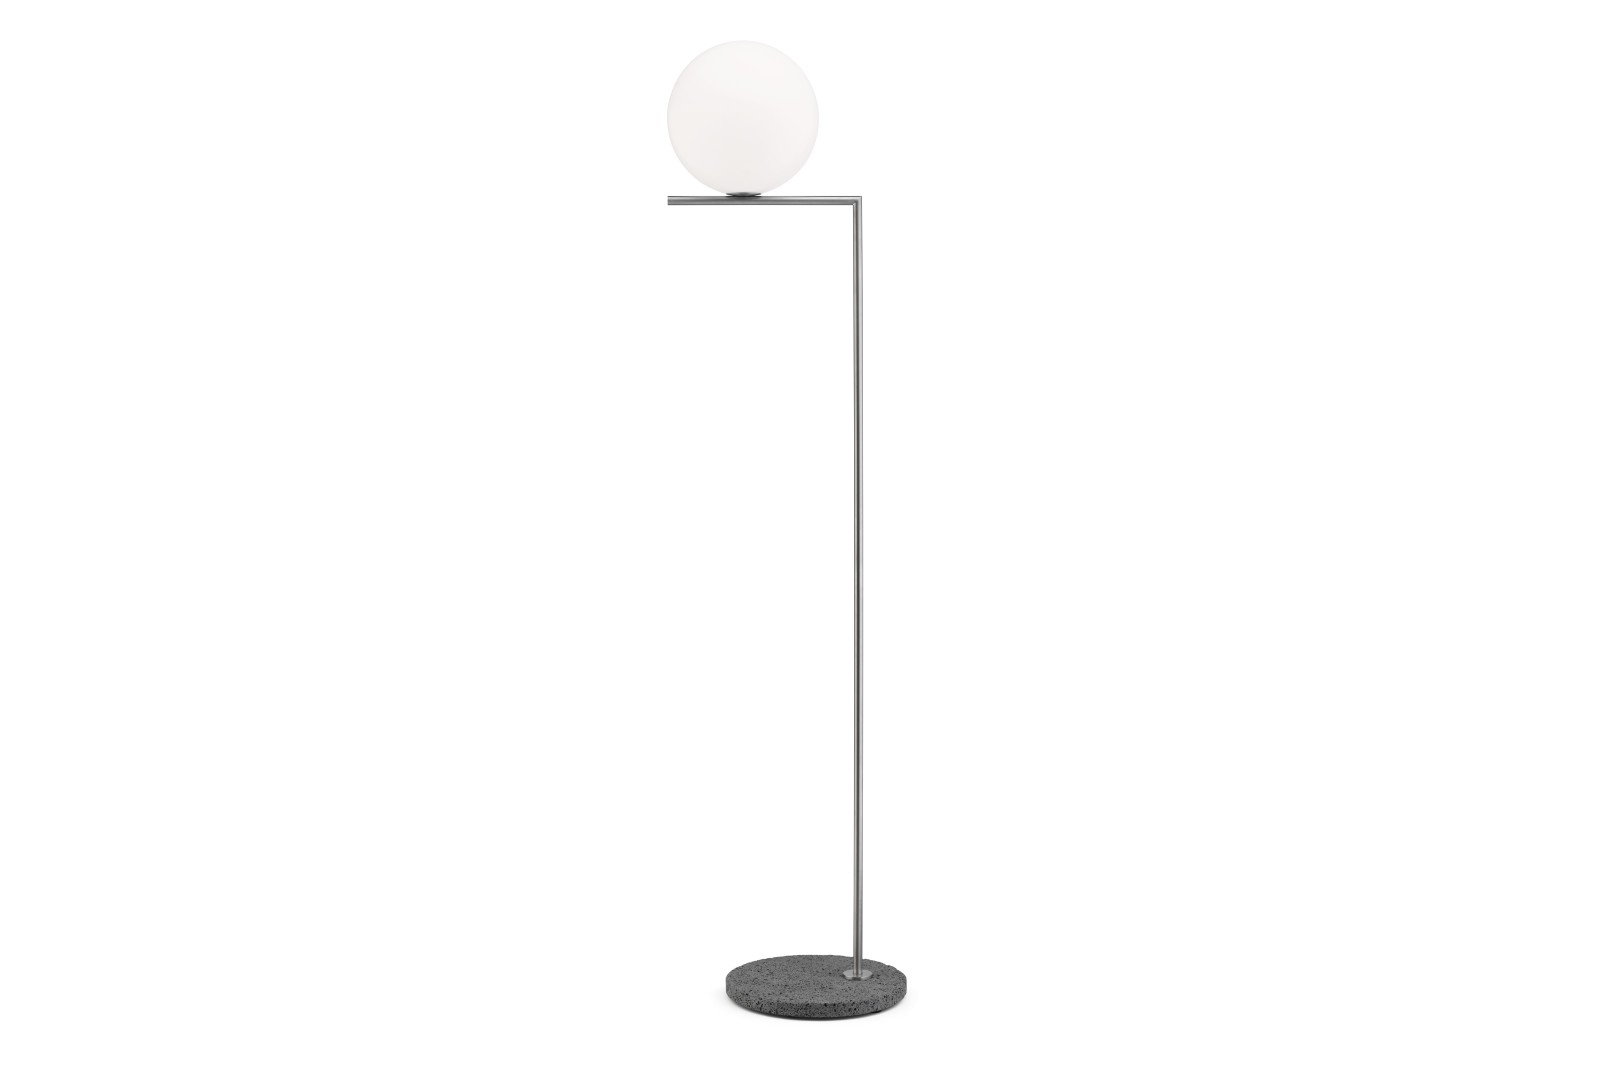 IC Outdoor / Indoor Floor Lamp Stainless Steel Structure / Occhio Di Pernice Stone Base, IC F1